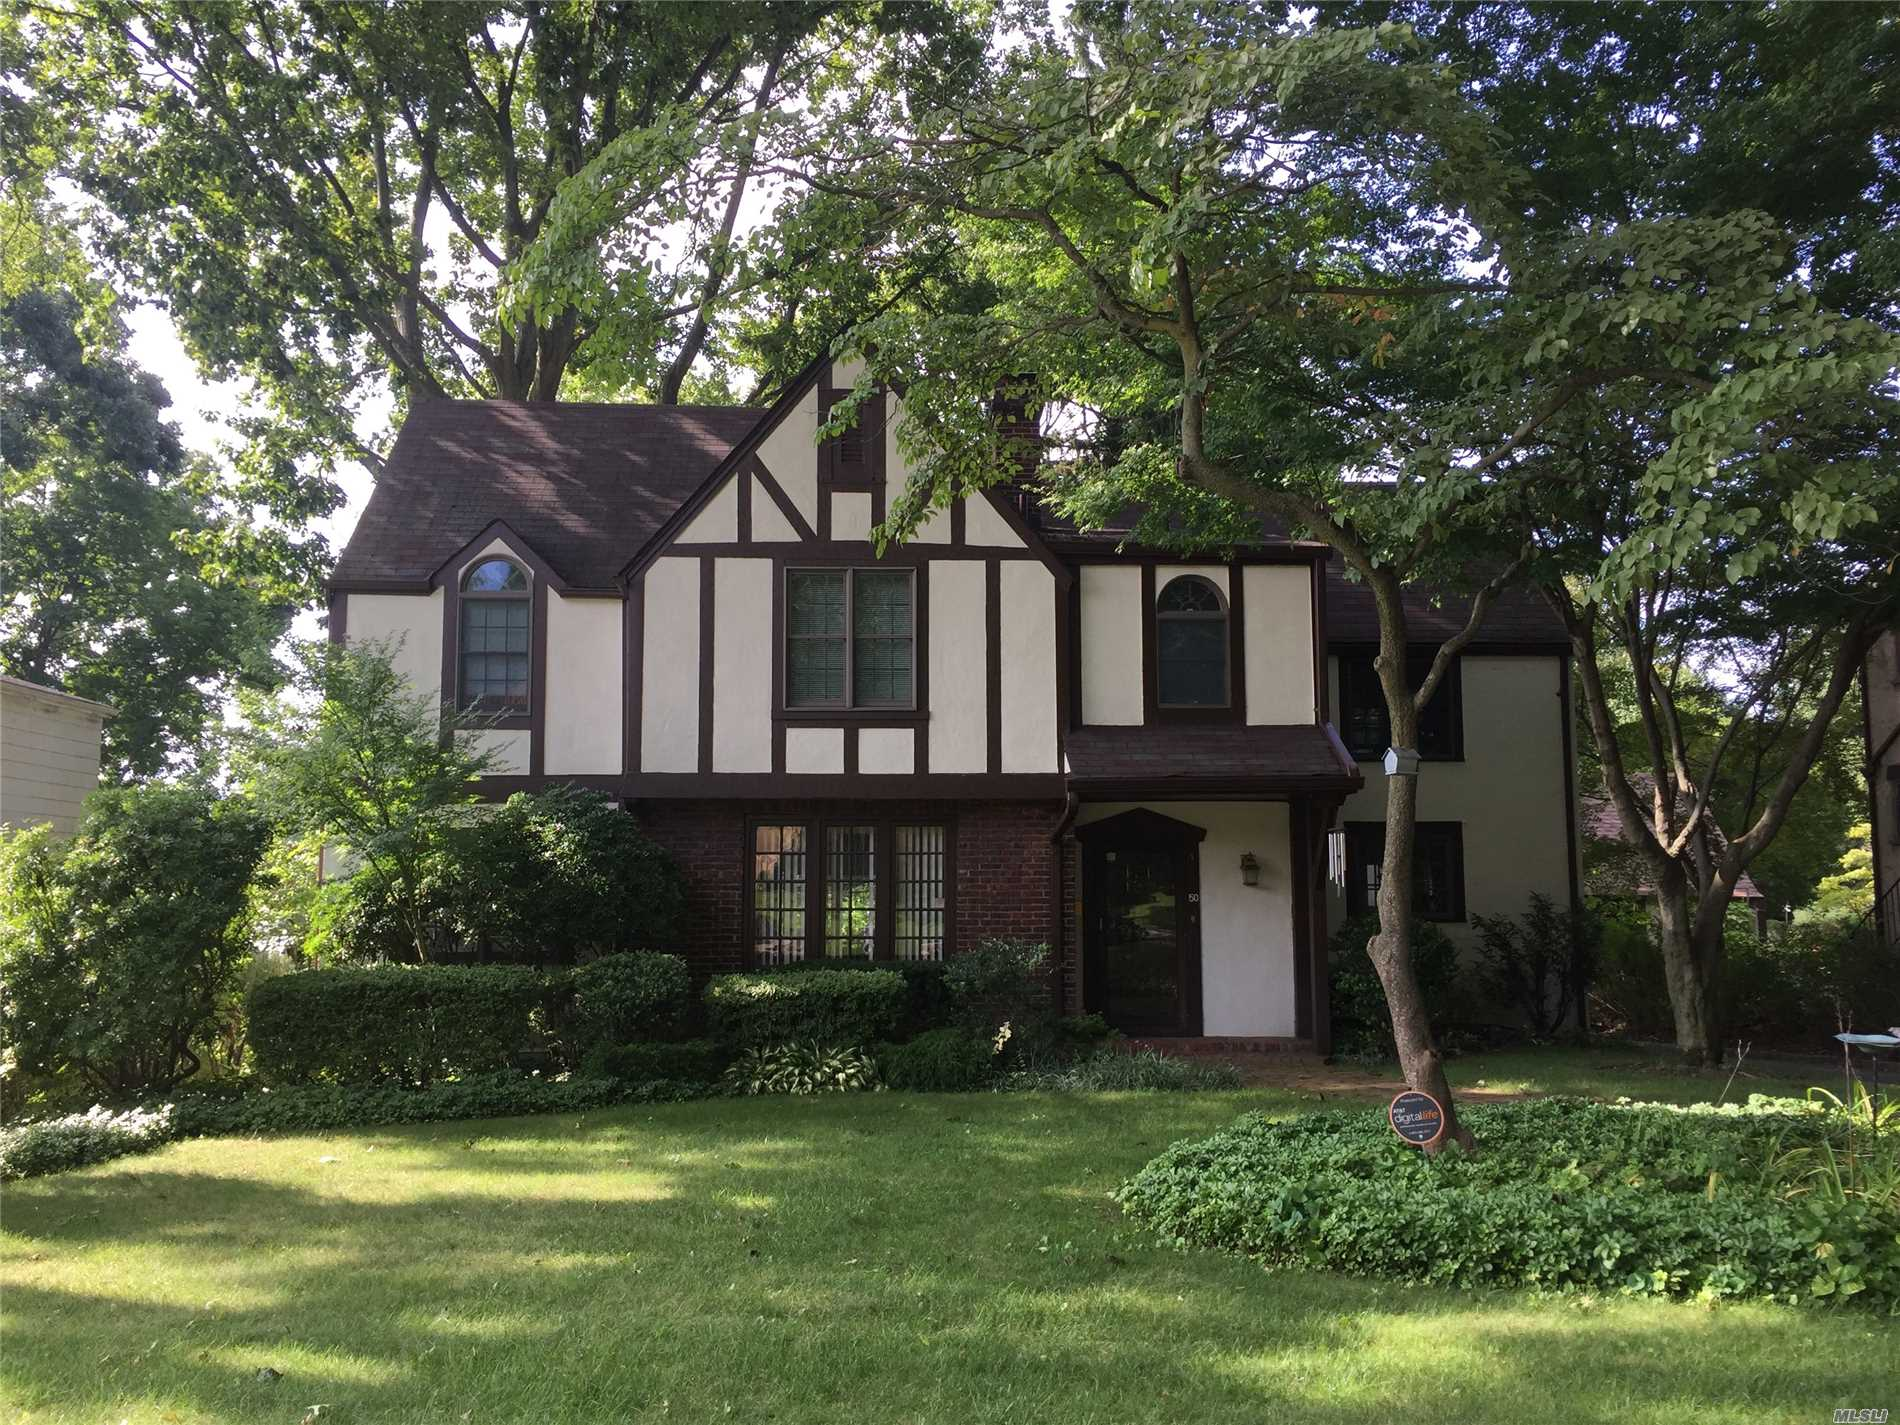 Owner Offering $10, 000 Credit At Closing To Help Offset Property Taxes. Taxes Currently Based On $1.560 Assessed Value.On Title, New Owner Can Grieve Based On Selling Price & Receive Reduction In 2020 Tax Bills. Lr W/Fp, Sun Rm/Office, Fdr W/Custom Millwork, Newer Chef's Ktn W/Island & Half Bth. Lrg Great Rm W/Fp To Deck/Yard. Master Ensuite +3 Generous Brs, Bth. All Hw Fls, Fin Bsmt, 5Z Heating, Cac, 6Z Spklers, 2C Gar. Neartown, Train & School. Beach, Mooring & Tennis W/Assoc Membership &Dues.